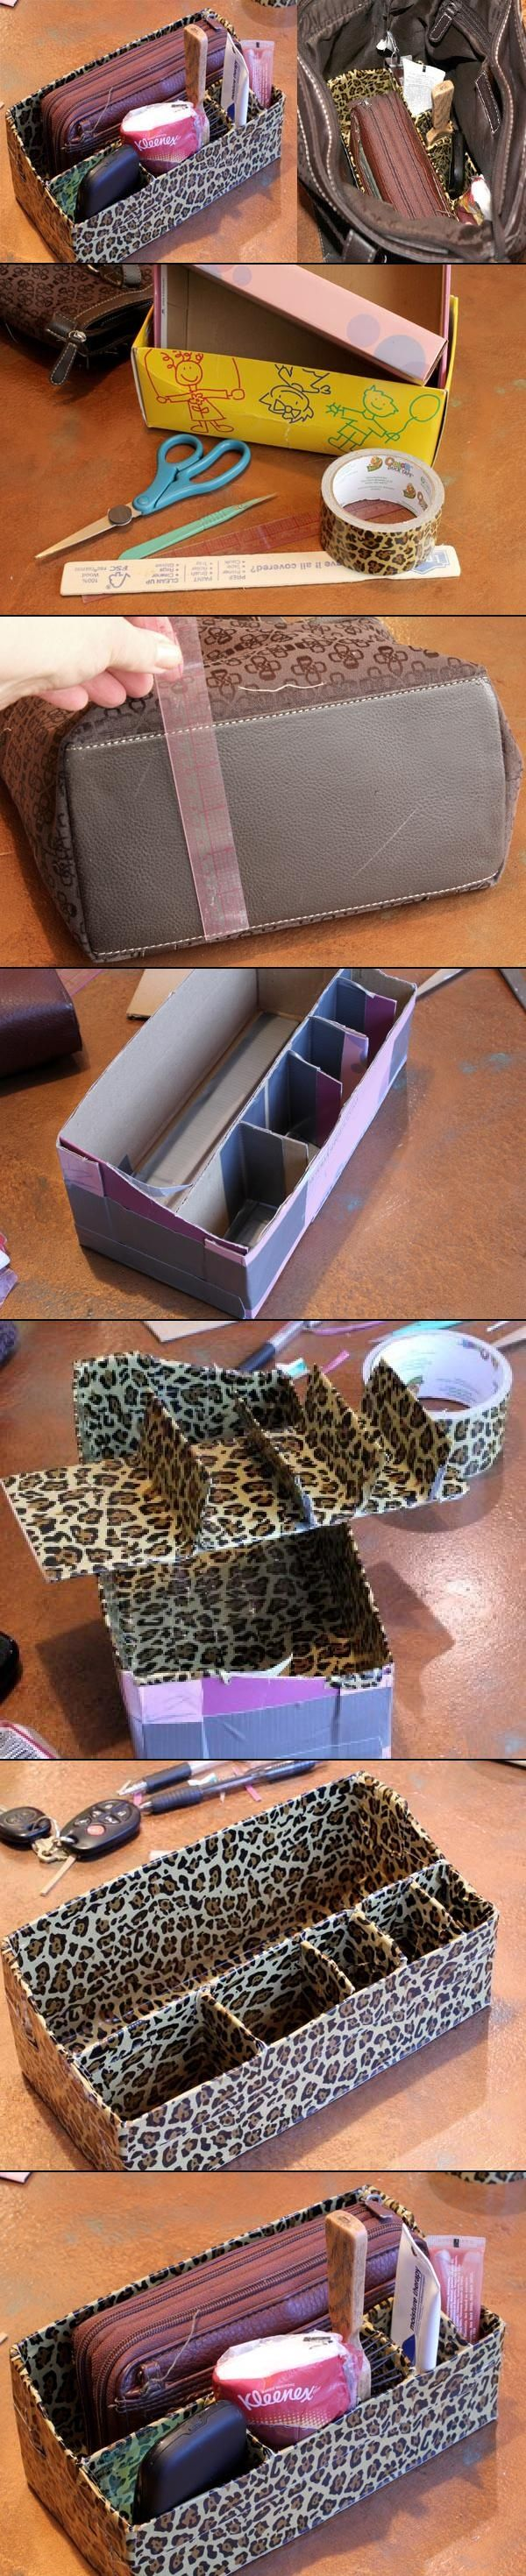 DIY Duct Tape Purse Organizer, by Me Makey Things.